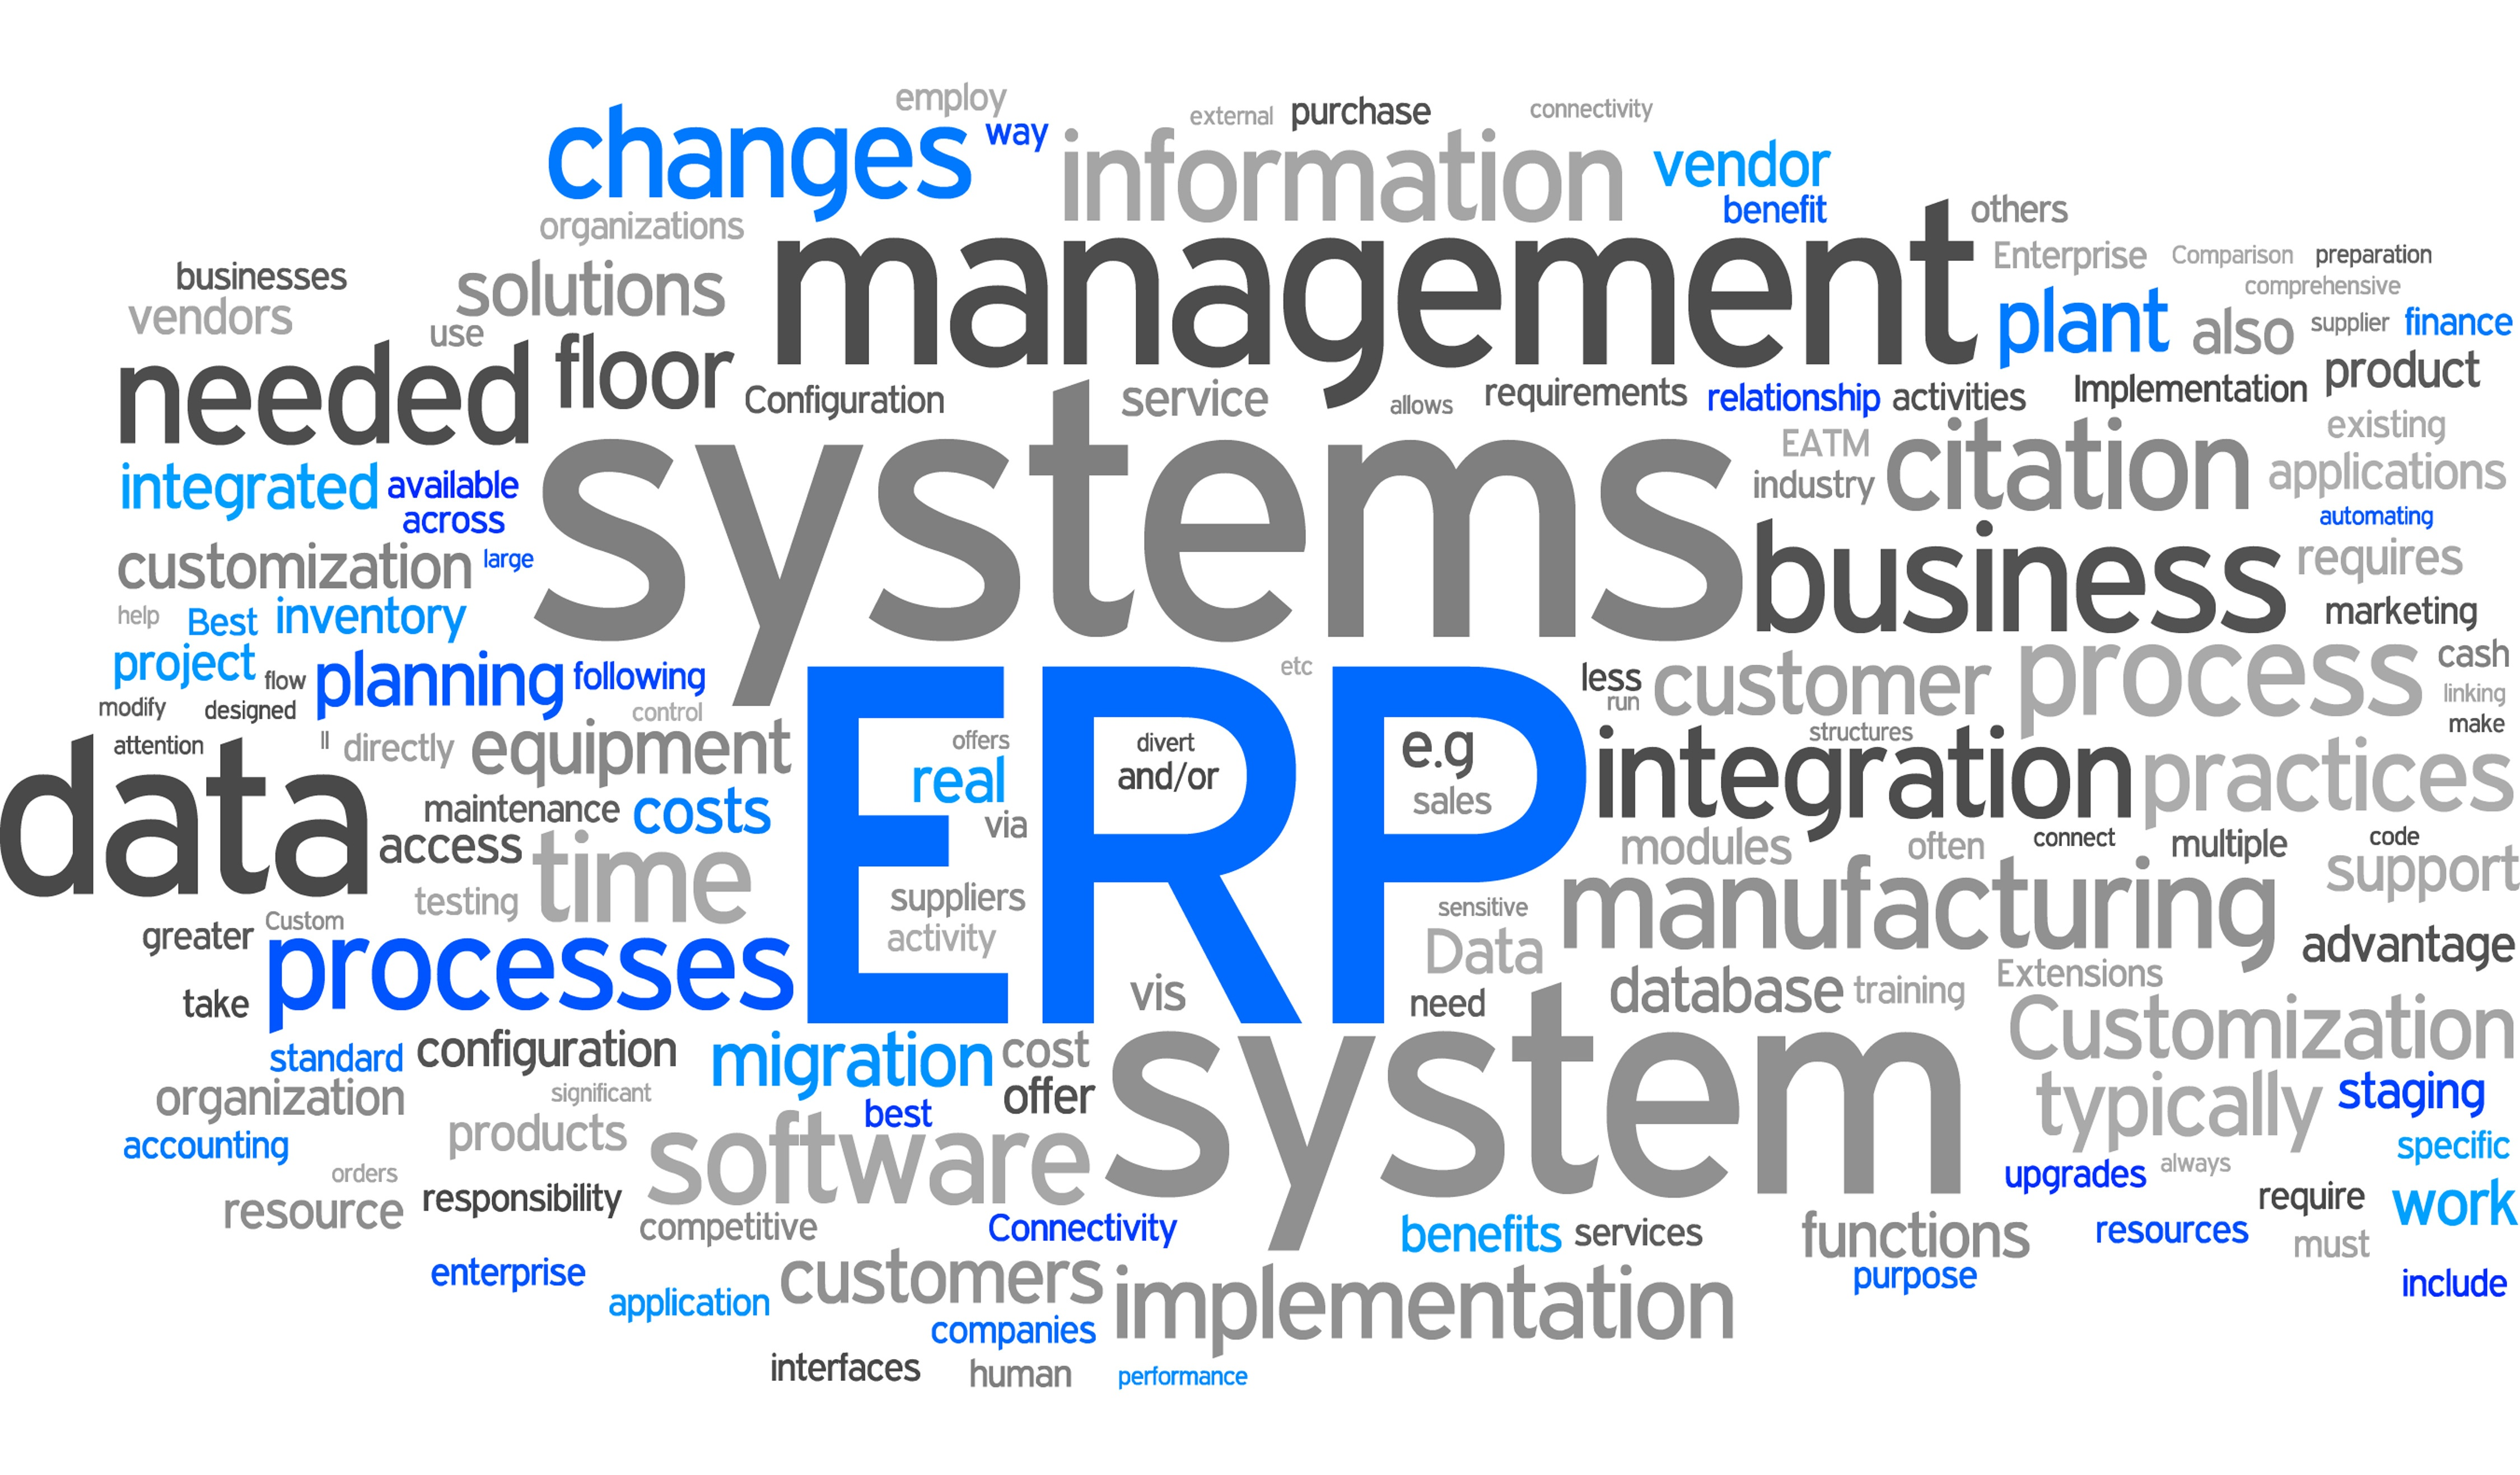 Top Functionality Needs of ERP Buyers